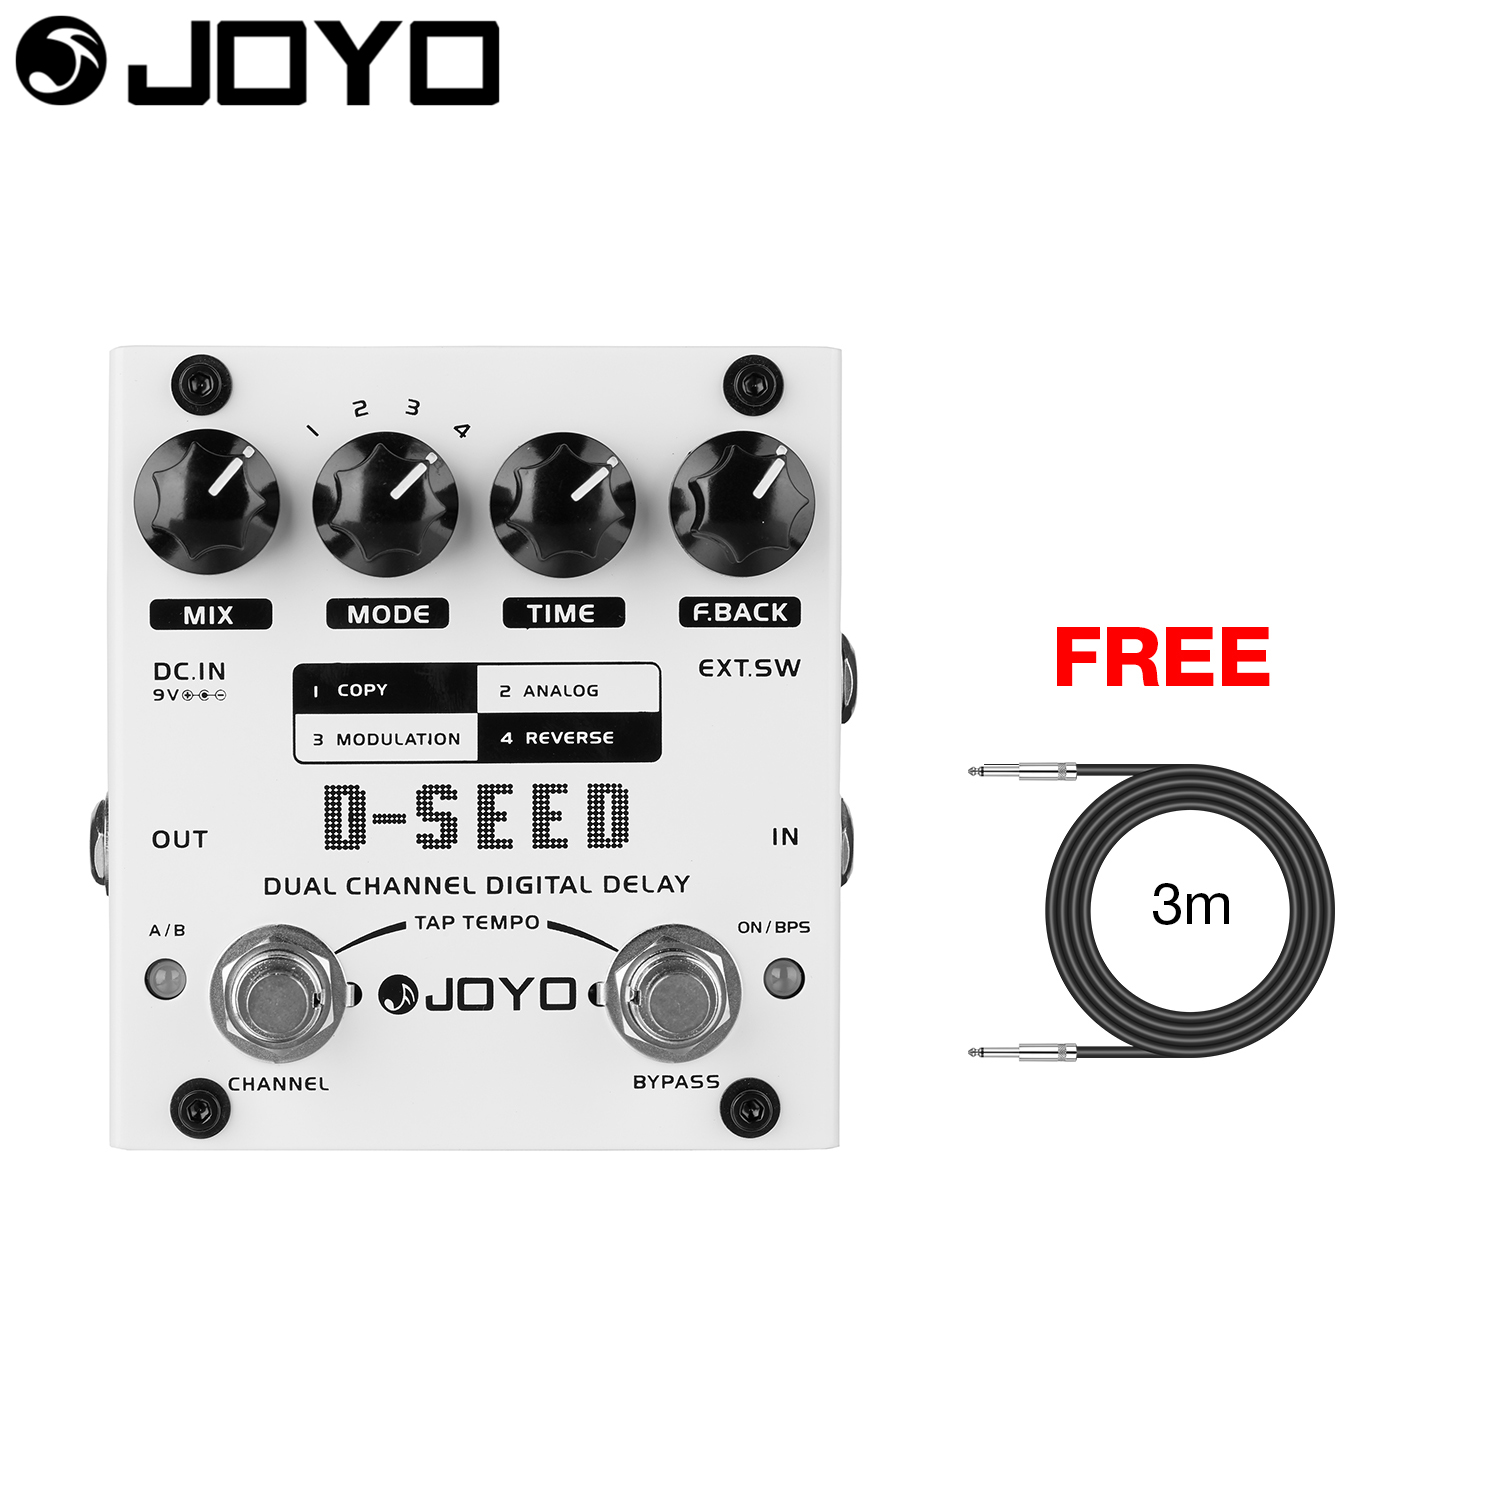 JOYO Dual Channel Digital Delay Guitar Effect Pedal TAP-TEMPO Function External Trigger Input D-SEED with Free 3m Cable